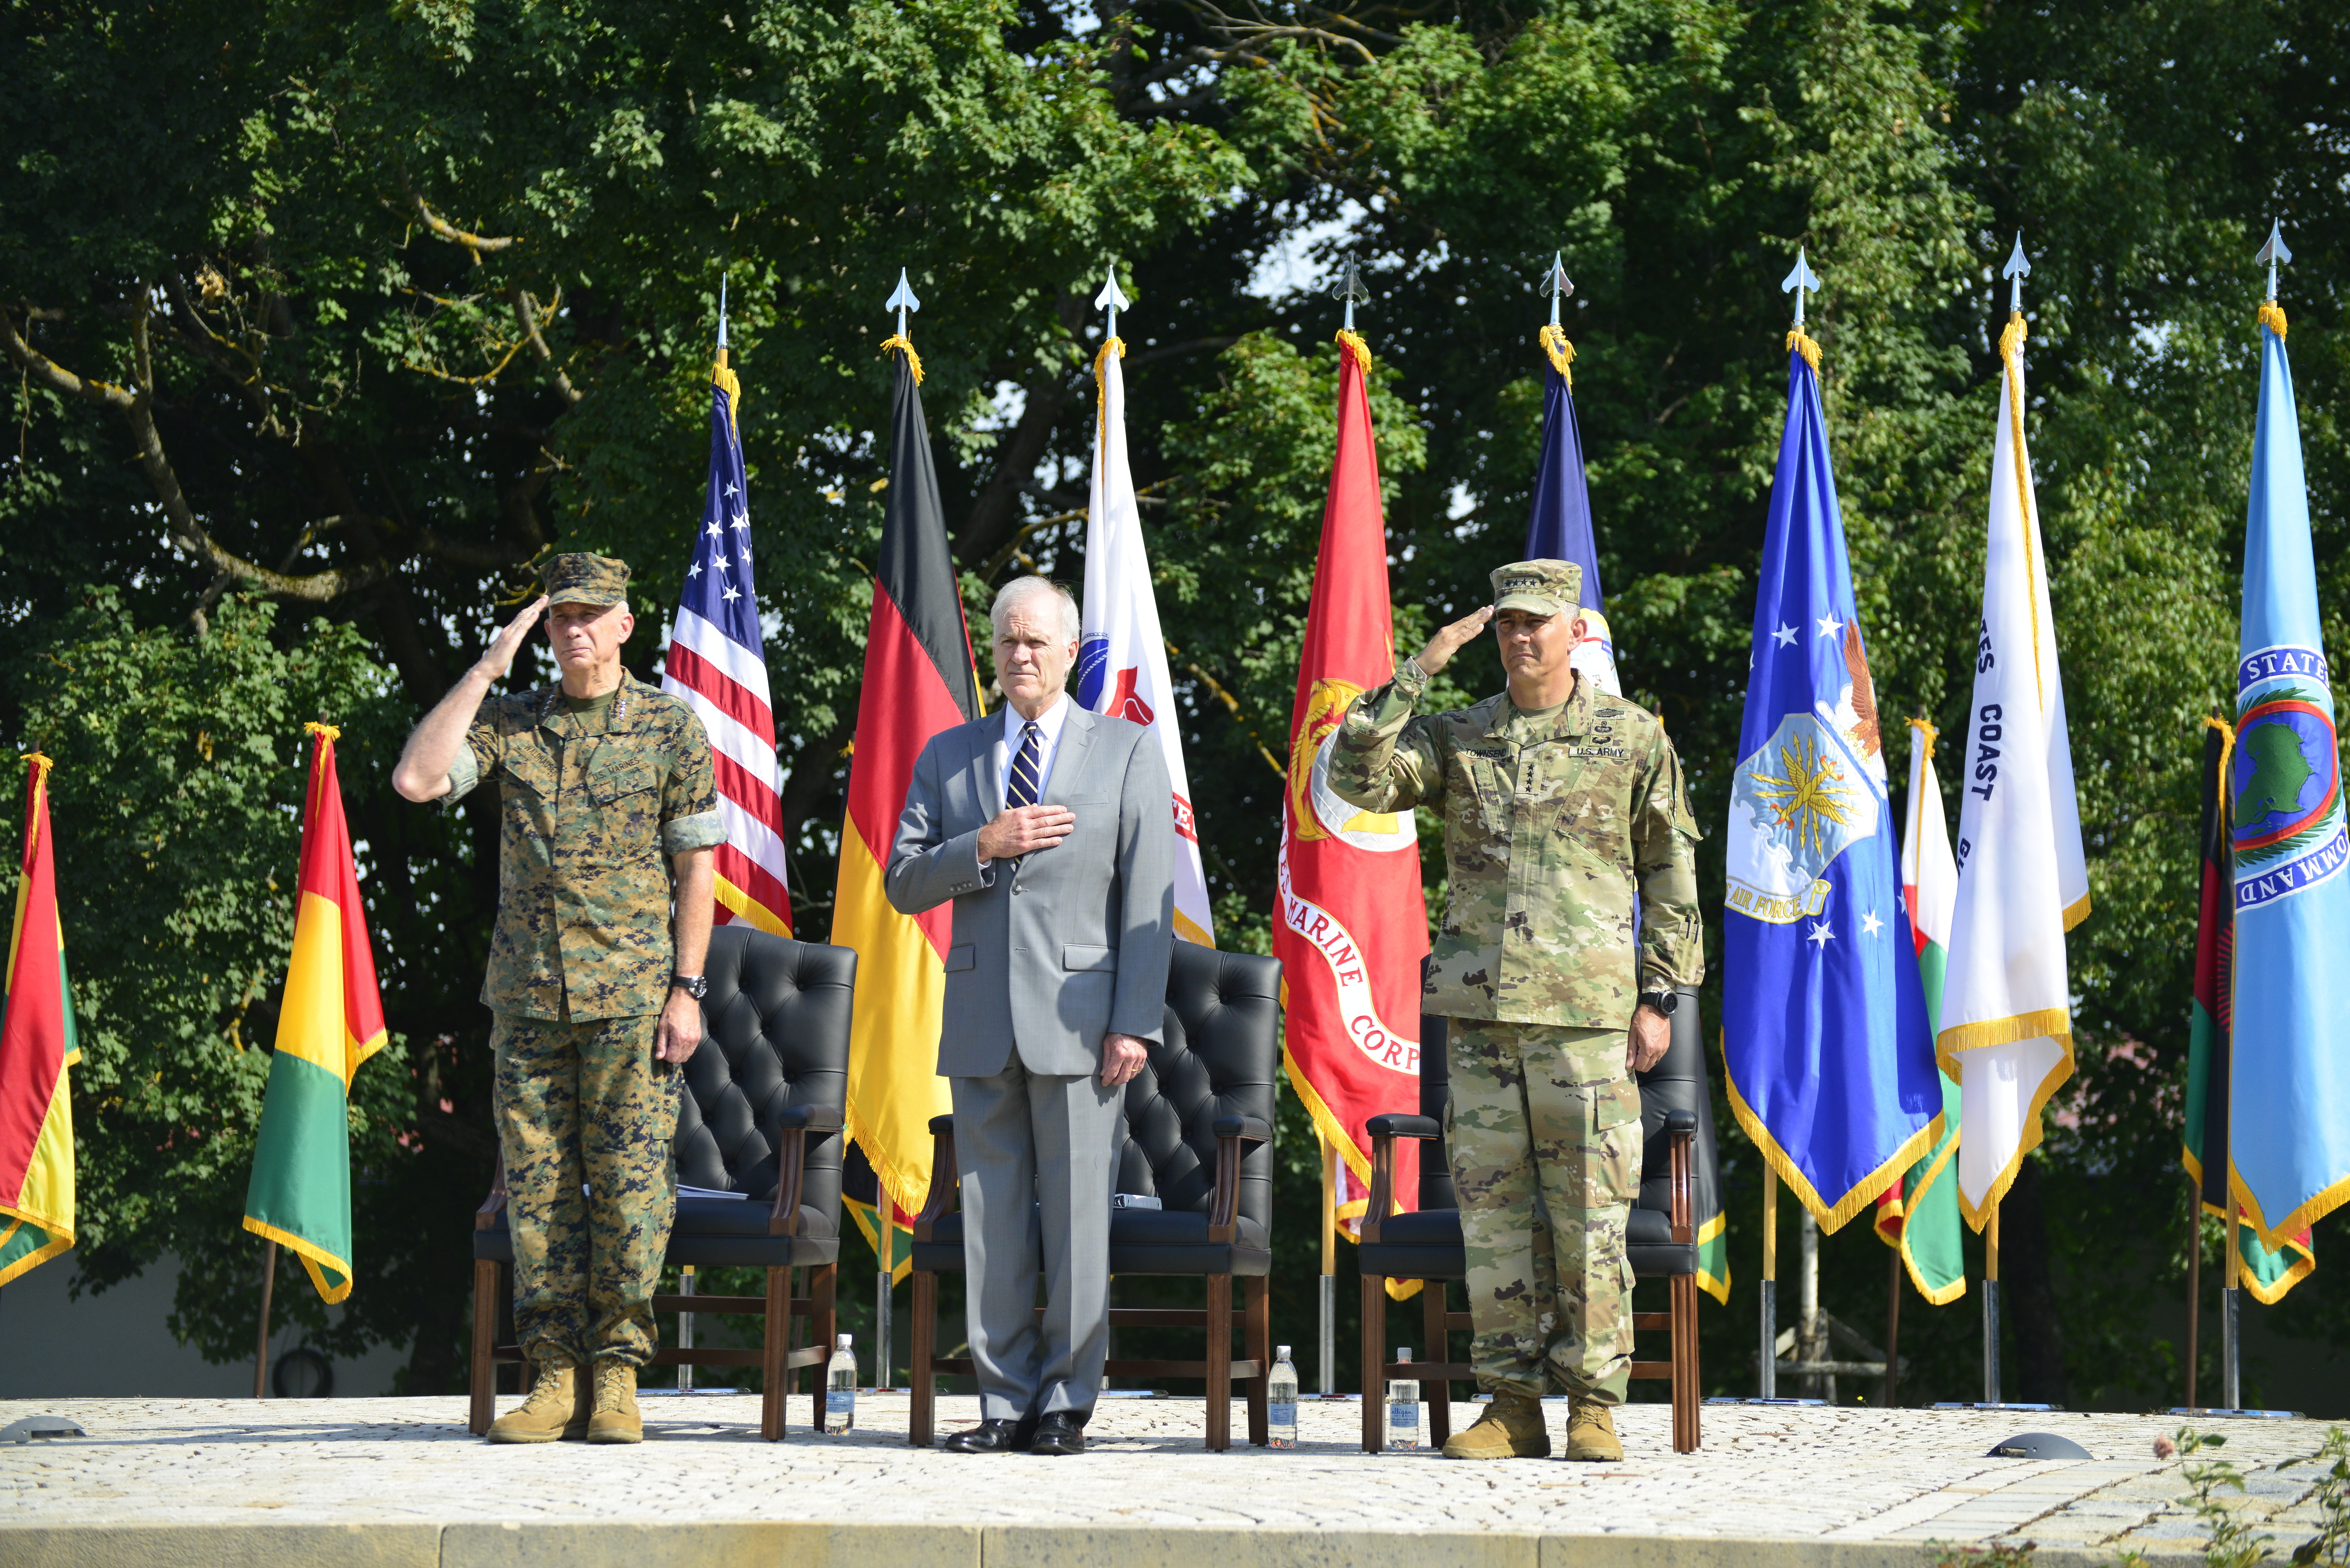 From left, Marine Corps Gen. Thomas D. Waldhauser, outgoing commander, Performing the Duties of the Deputy Secretary of Defense Richard V. Spencer and Army Gen. Stephen J. Townsend, incoming commander, salute a joint color guard during the AFRICOM change of command at Patch Barracks in Stuttgart, Germany, July 26, 2019. Townsend became the fifth AFRICOM commander. (U.S. Army photo by Takisha Miller/Released)